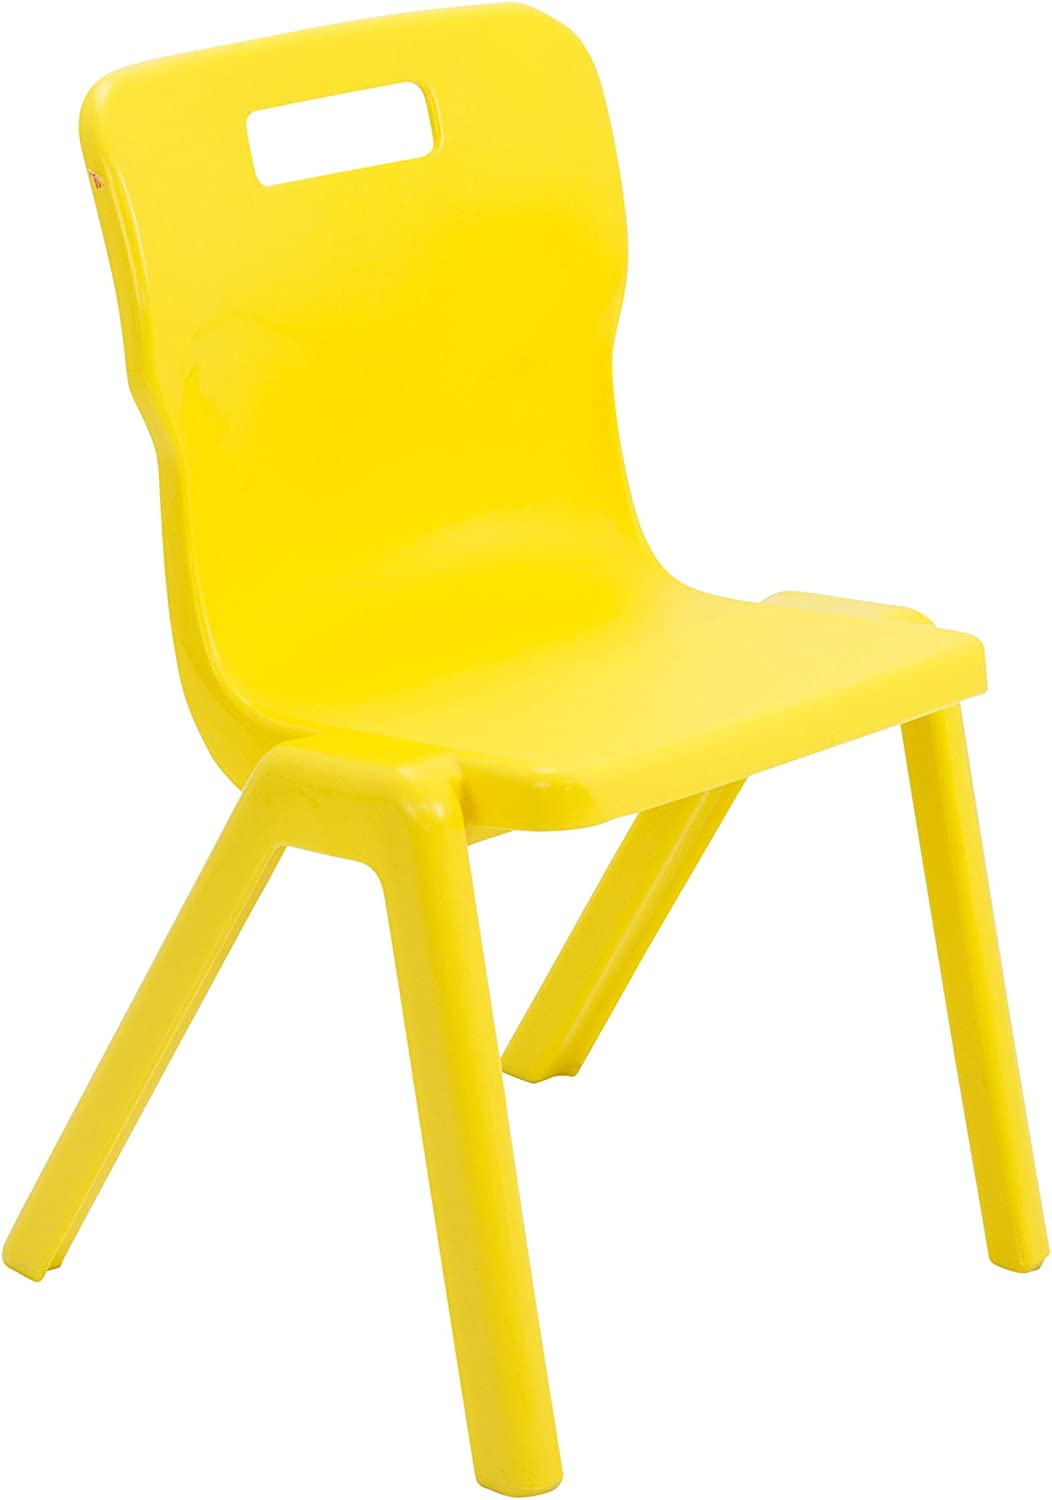 Titan One Piece Classroom Chair Plastic Size 4 for Ages 8-9 Years Yellow Pack of 4